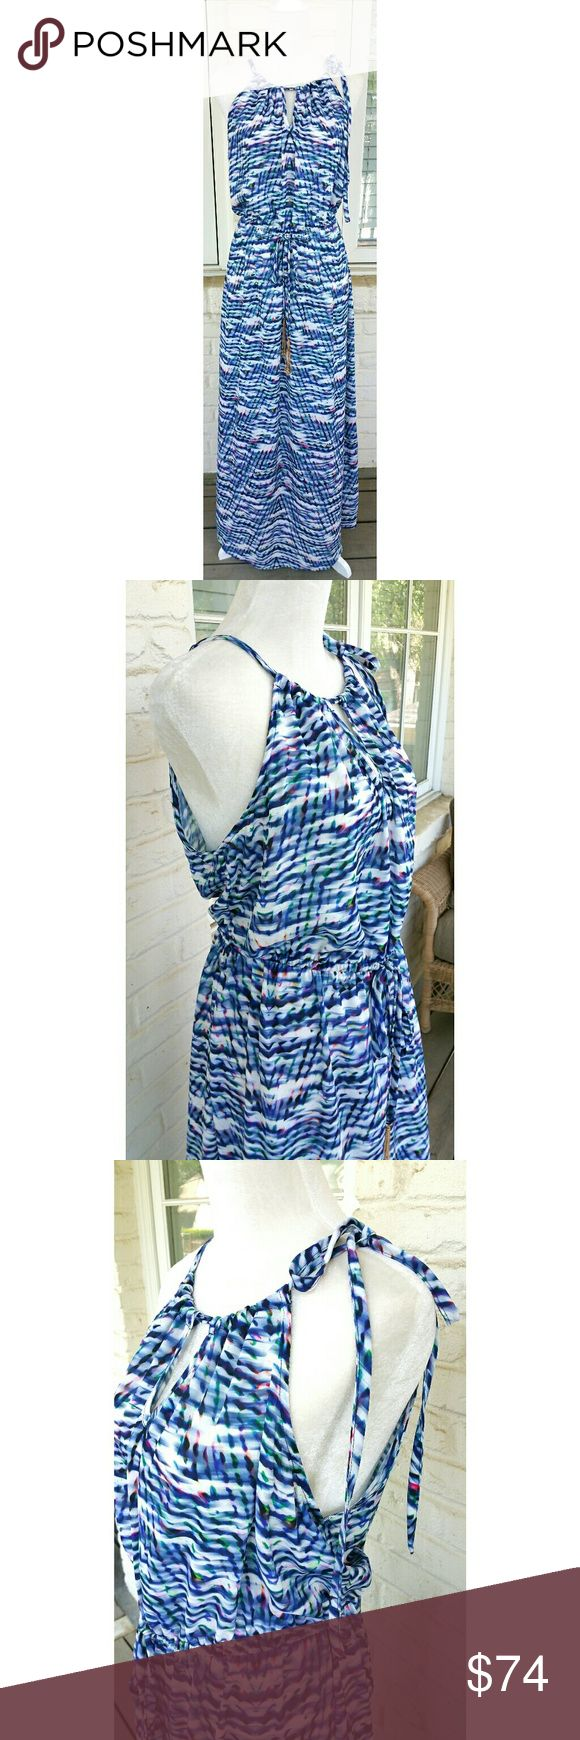 NWT, CITY CHIC Cobalt Copacabana Maxi Dress Gorgeous printed maxi dress with elastic waistband, keyhole neck, side shoulder tie, and all the fashion your little heart desires! This is a beautiful Summertime Maxi dress! City Chic Dresses